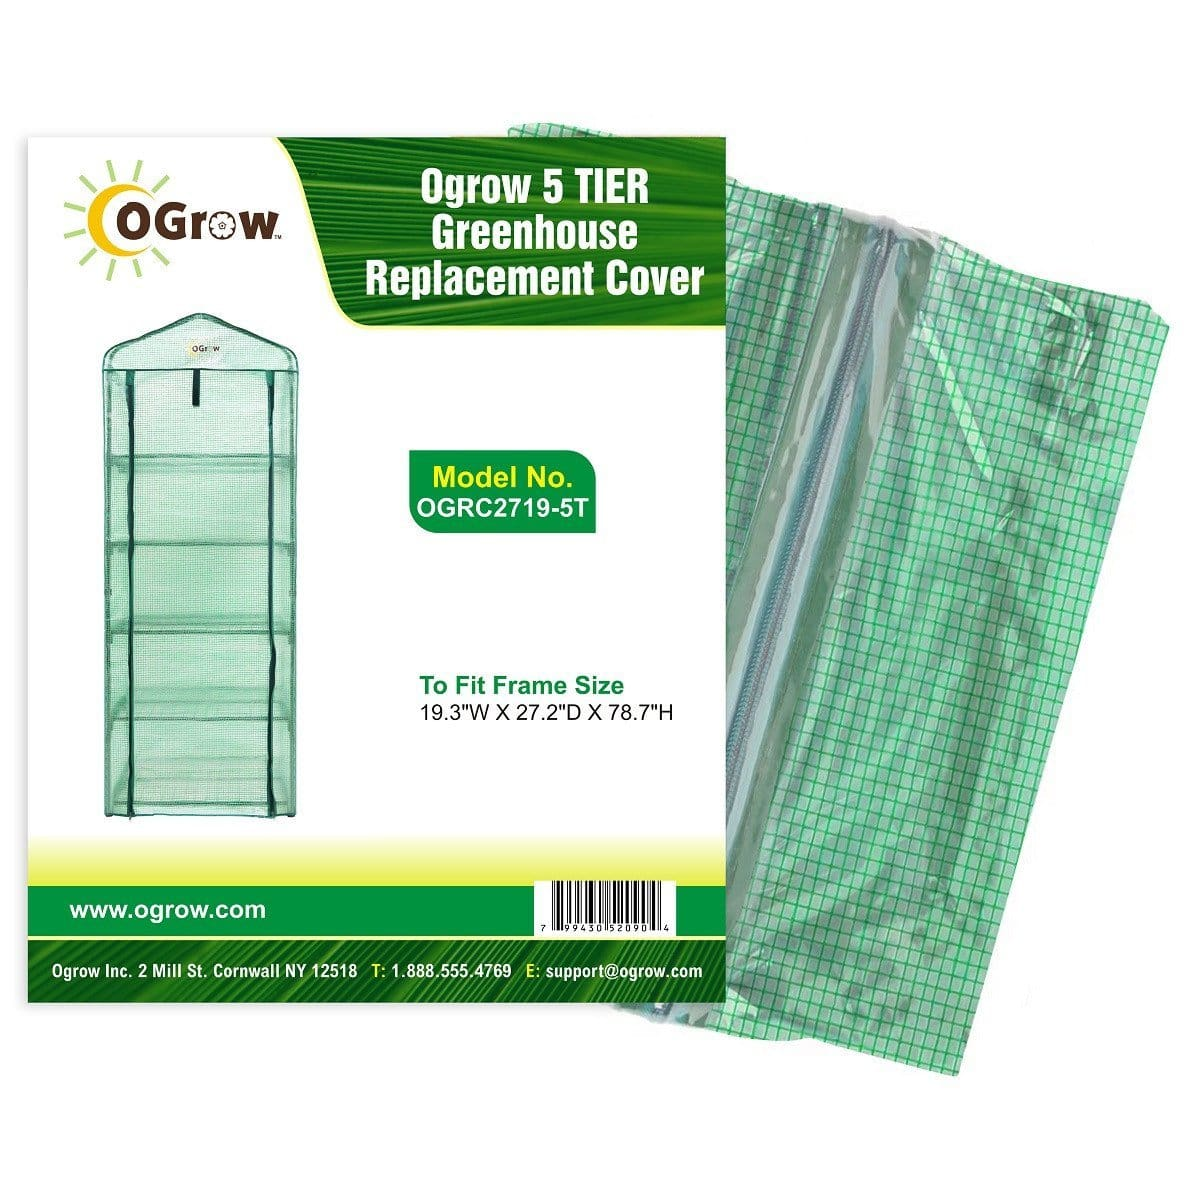 oGrow 5 Tier Greenhouse Pe Replacement Cover - To Fit Frame Size 19 3W X 27 2D X 78 7H - Greenhouses & Accessories